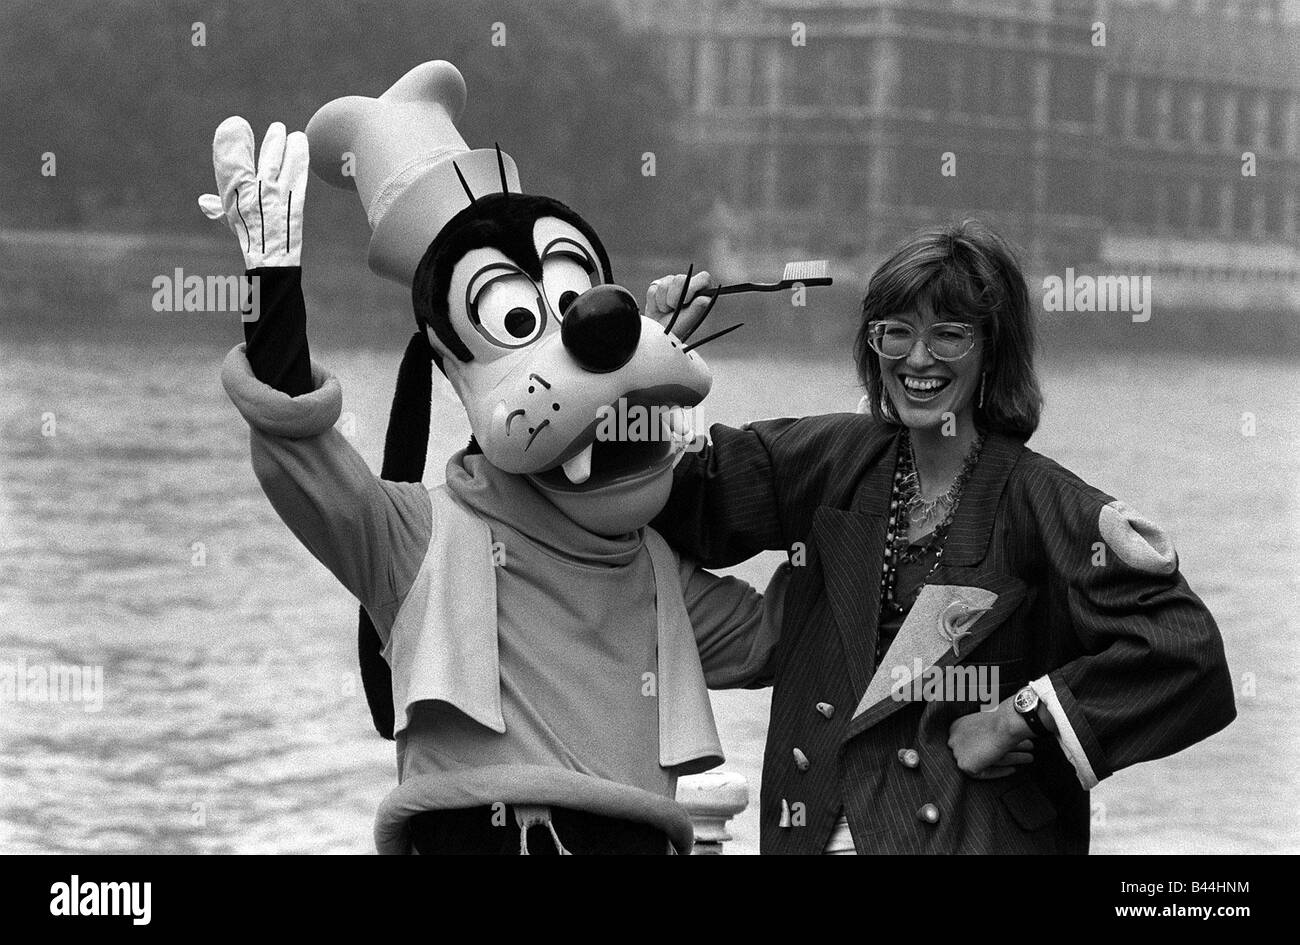 Janet Street Porter with Goofy on River Thames 1983 - Stock Image